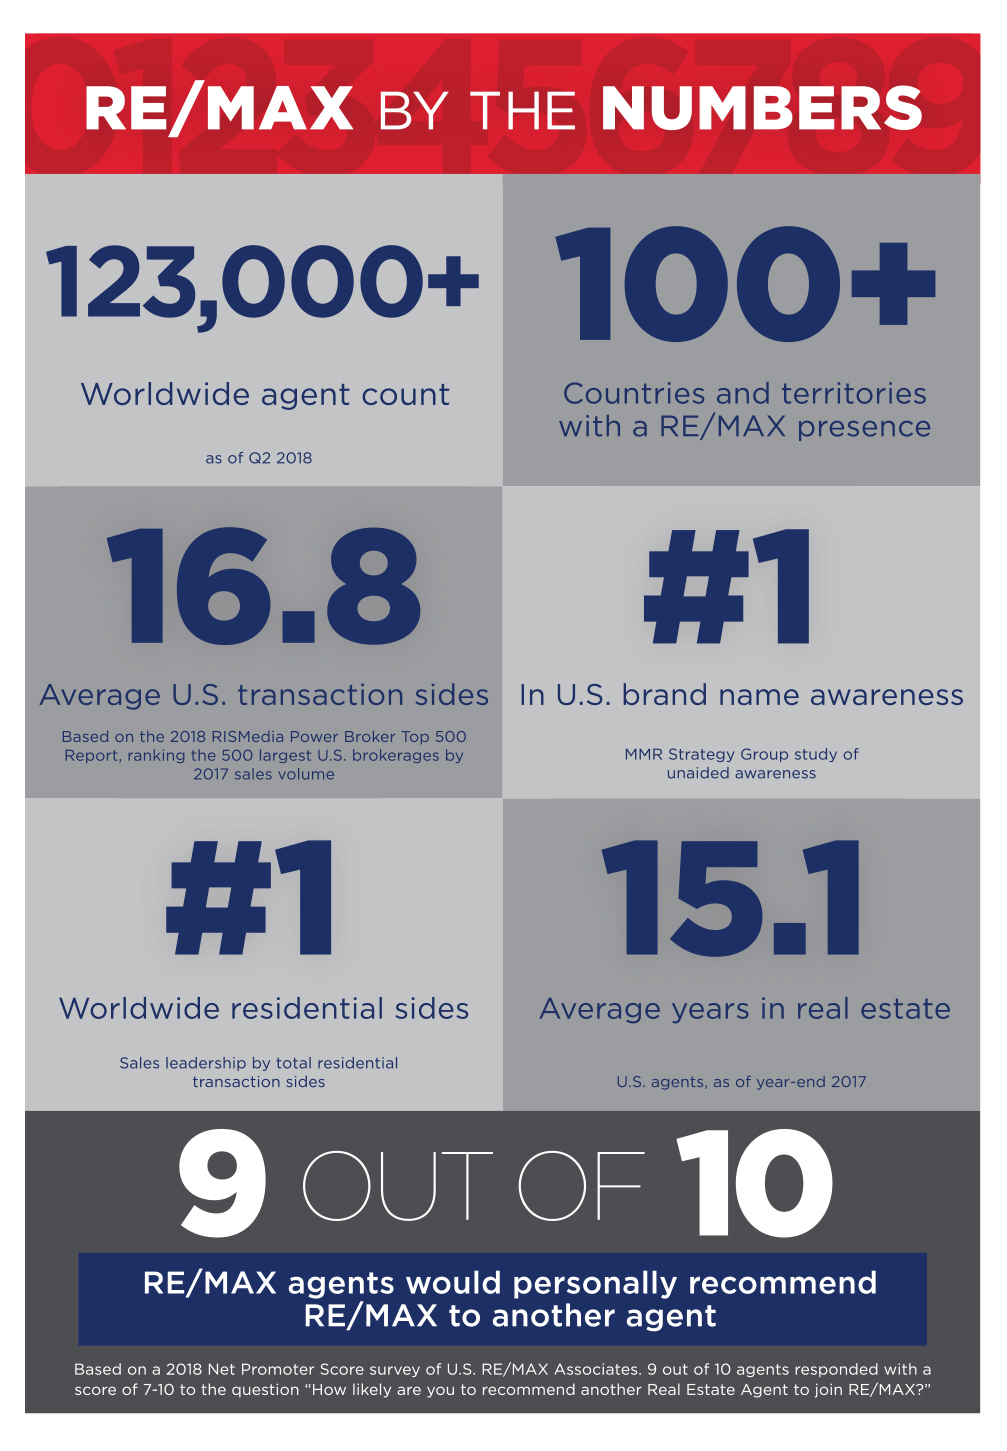 REMAX_By_the_Numbers_p35